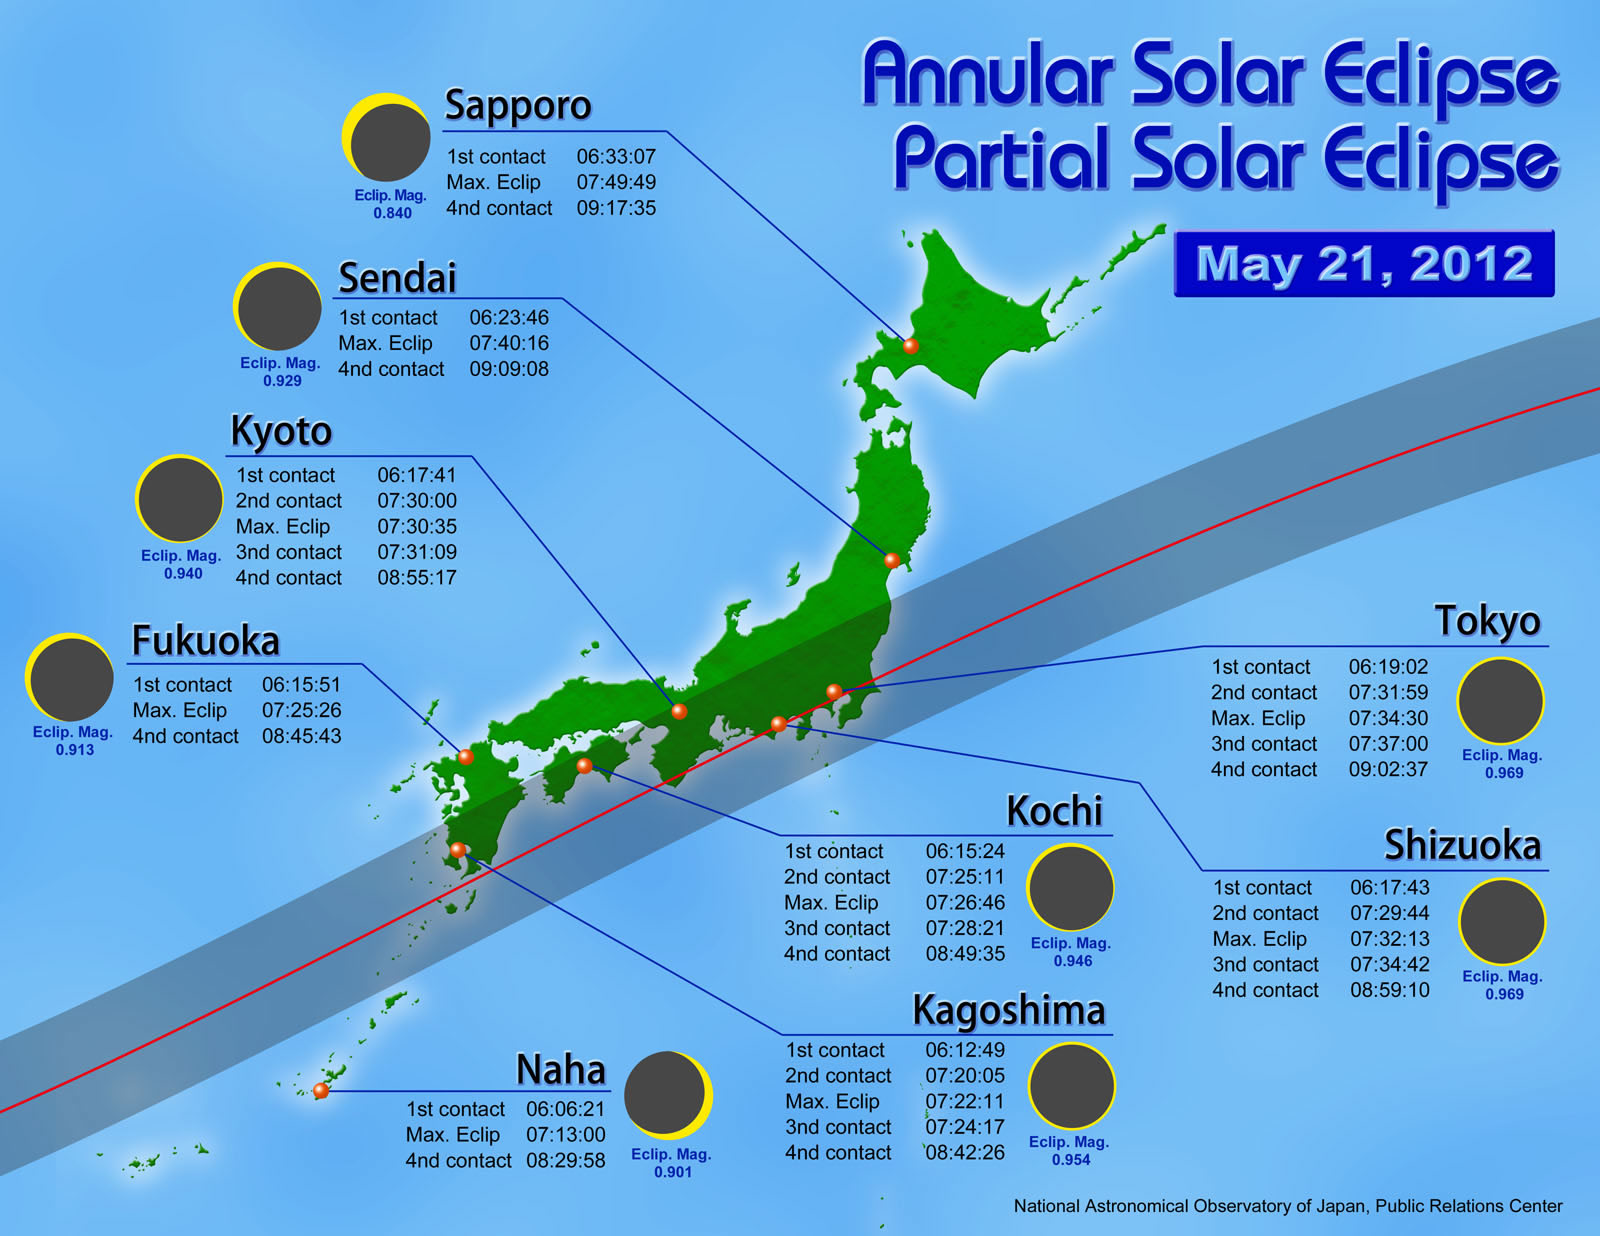 Partial Solar Eclipse Map.Annular Solar Eclipse On May 21 2012 About